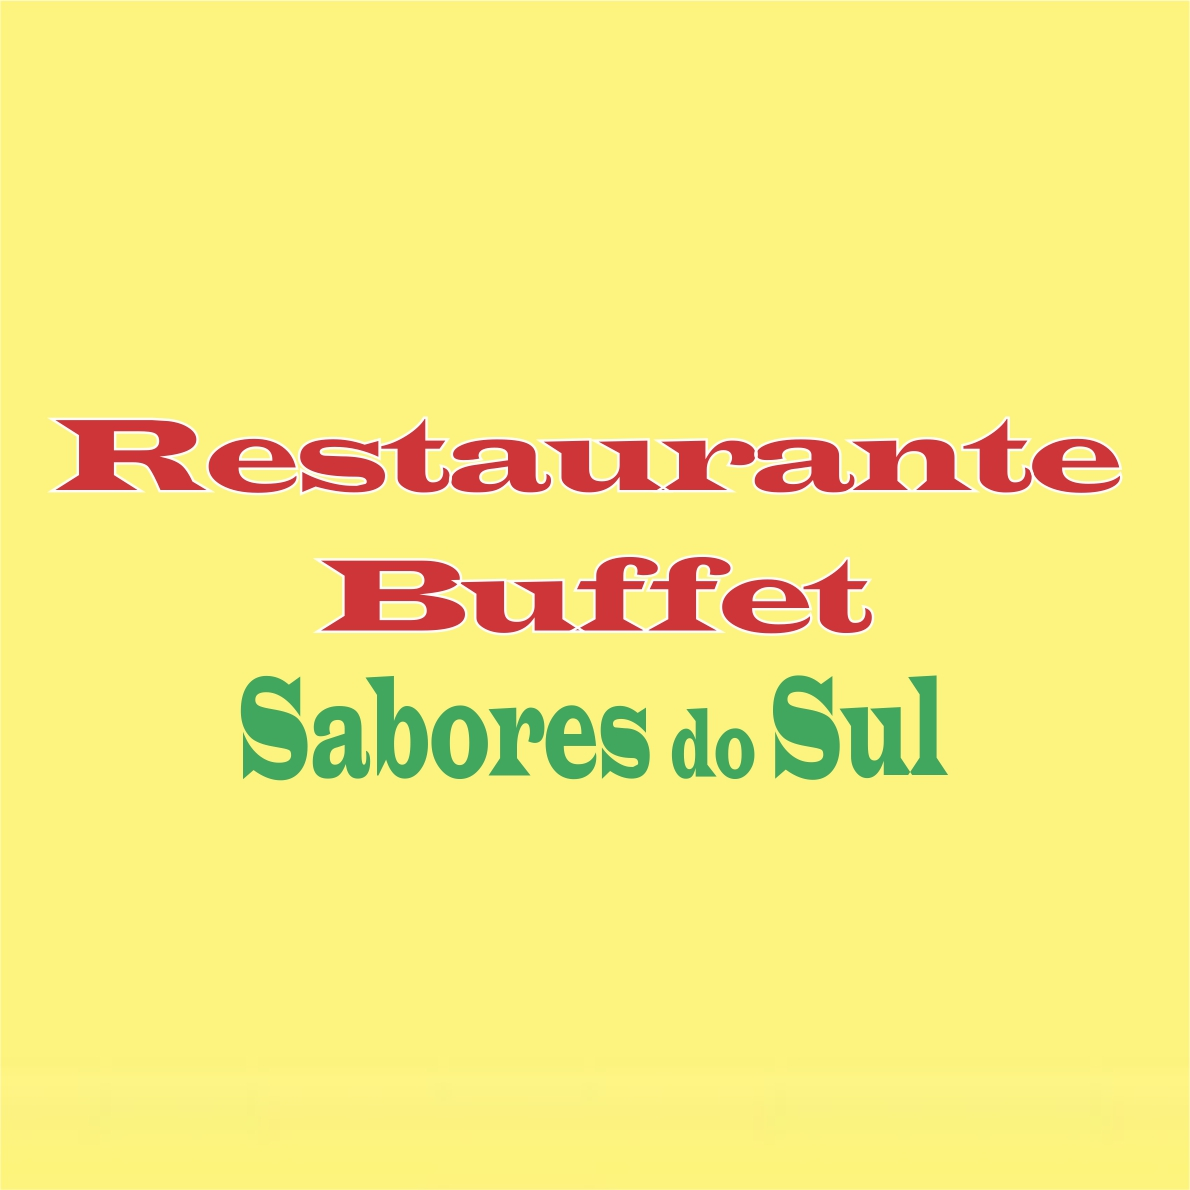 Restaurante Buffet Sabores do Sul